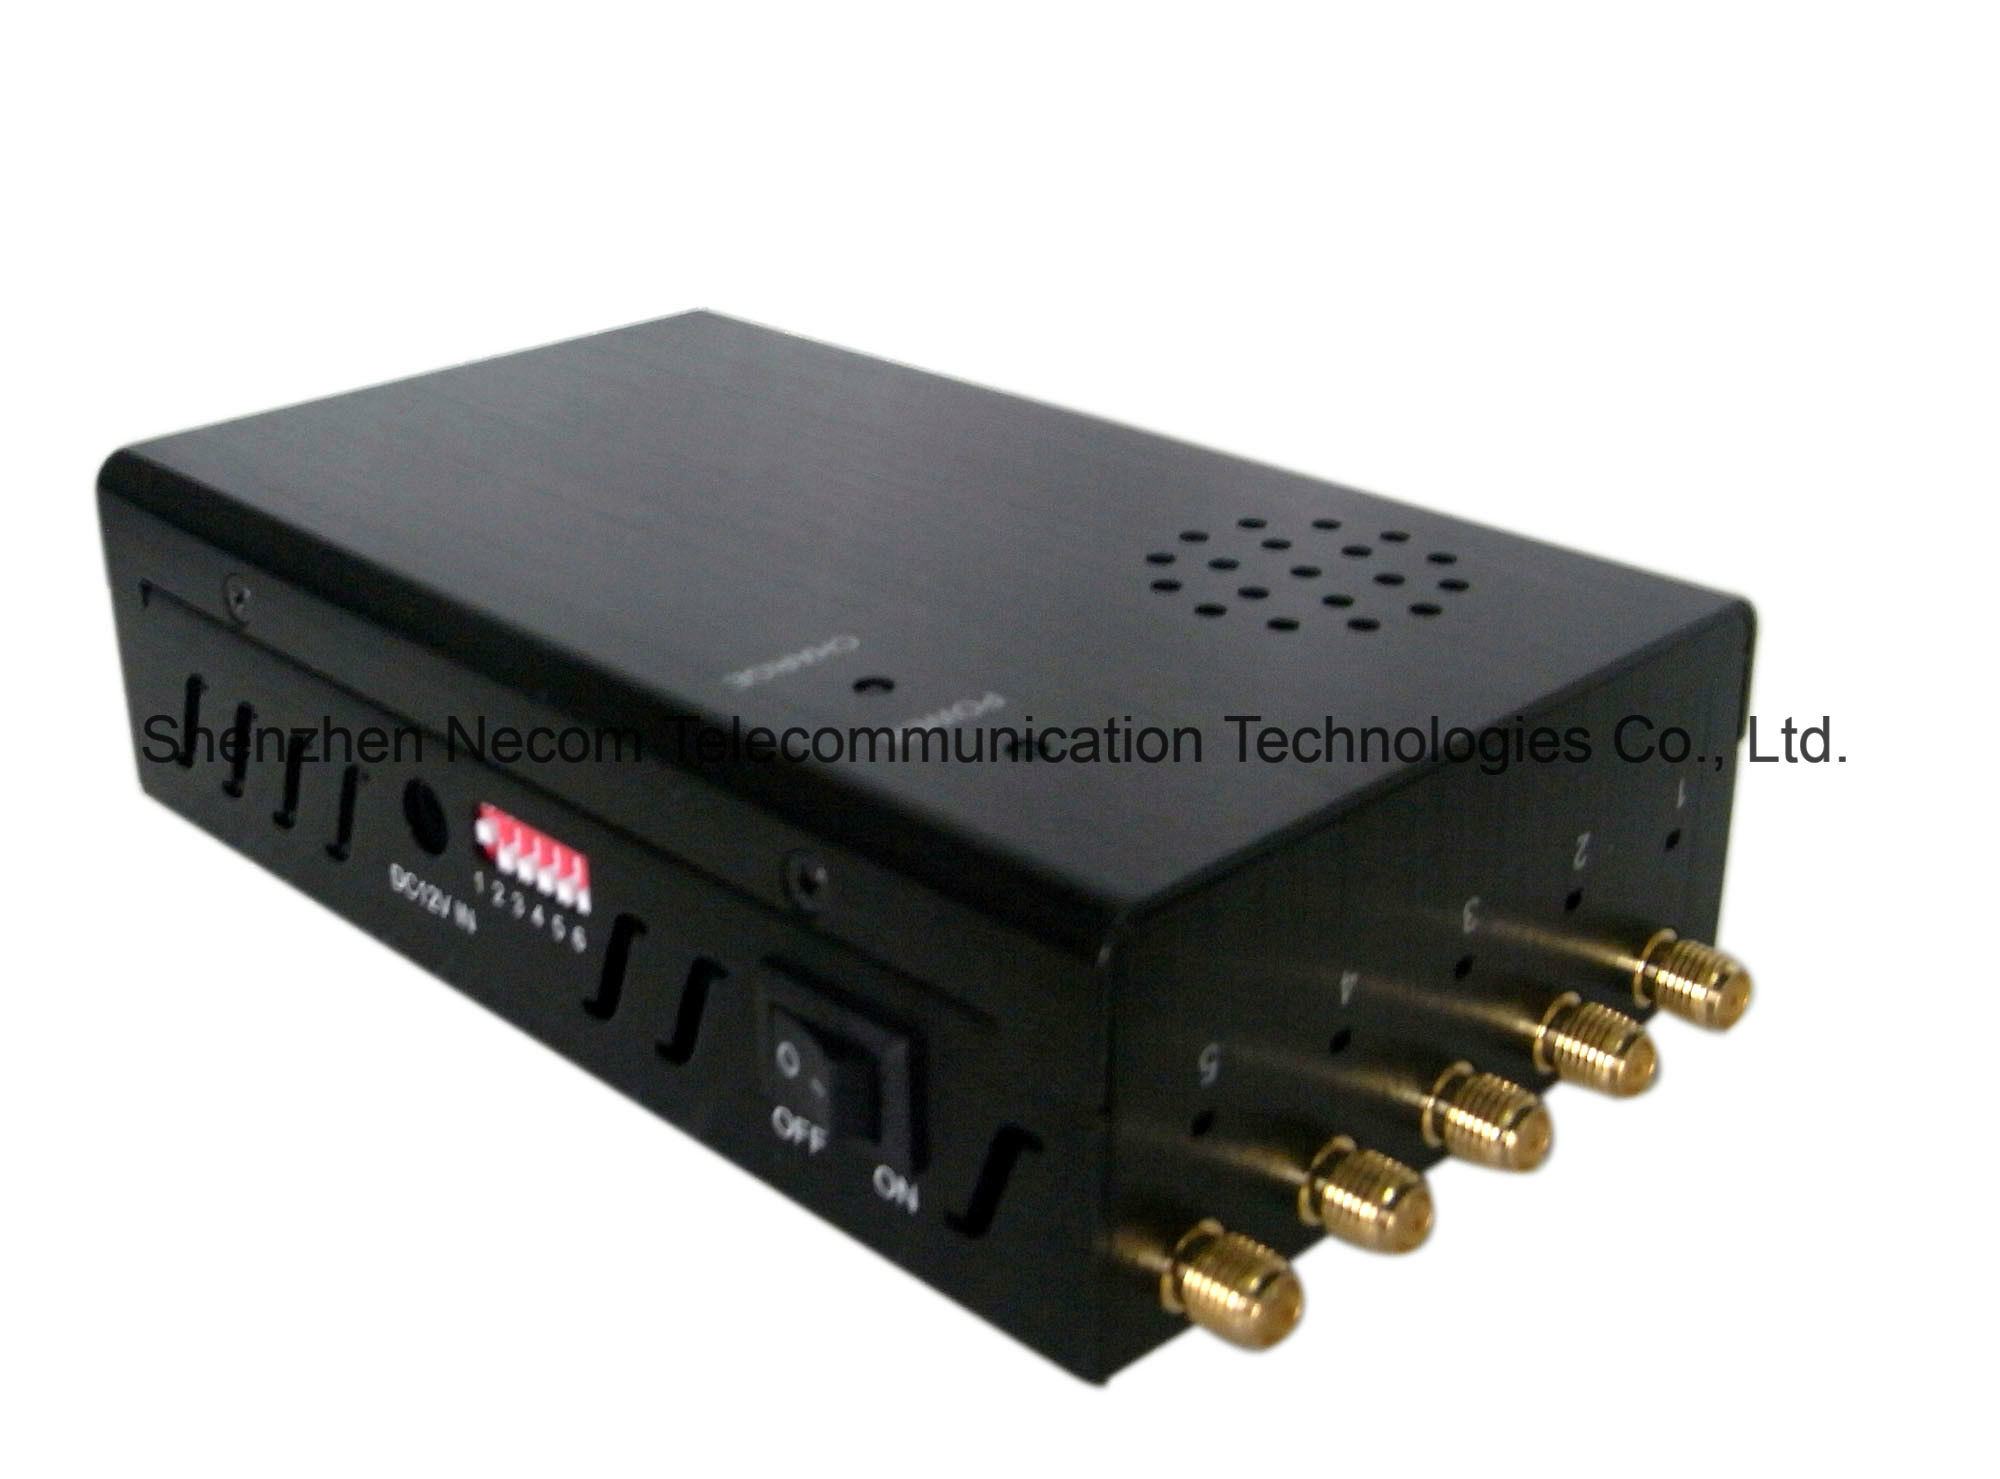 a mobile phone jammer - China Mobile Phone Style Mini GPS + Cellphone Signal Jammer, Mini Wireless Mobile Phone Signal Jammer (GSM, 3G, DCS, CDMA) - China Portable Cellphone Jammer, GSM Jammer